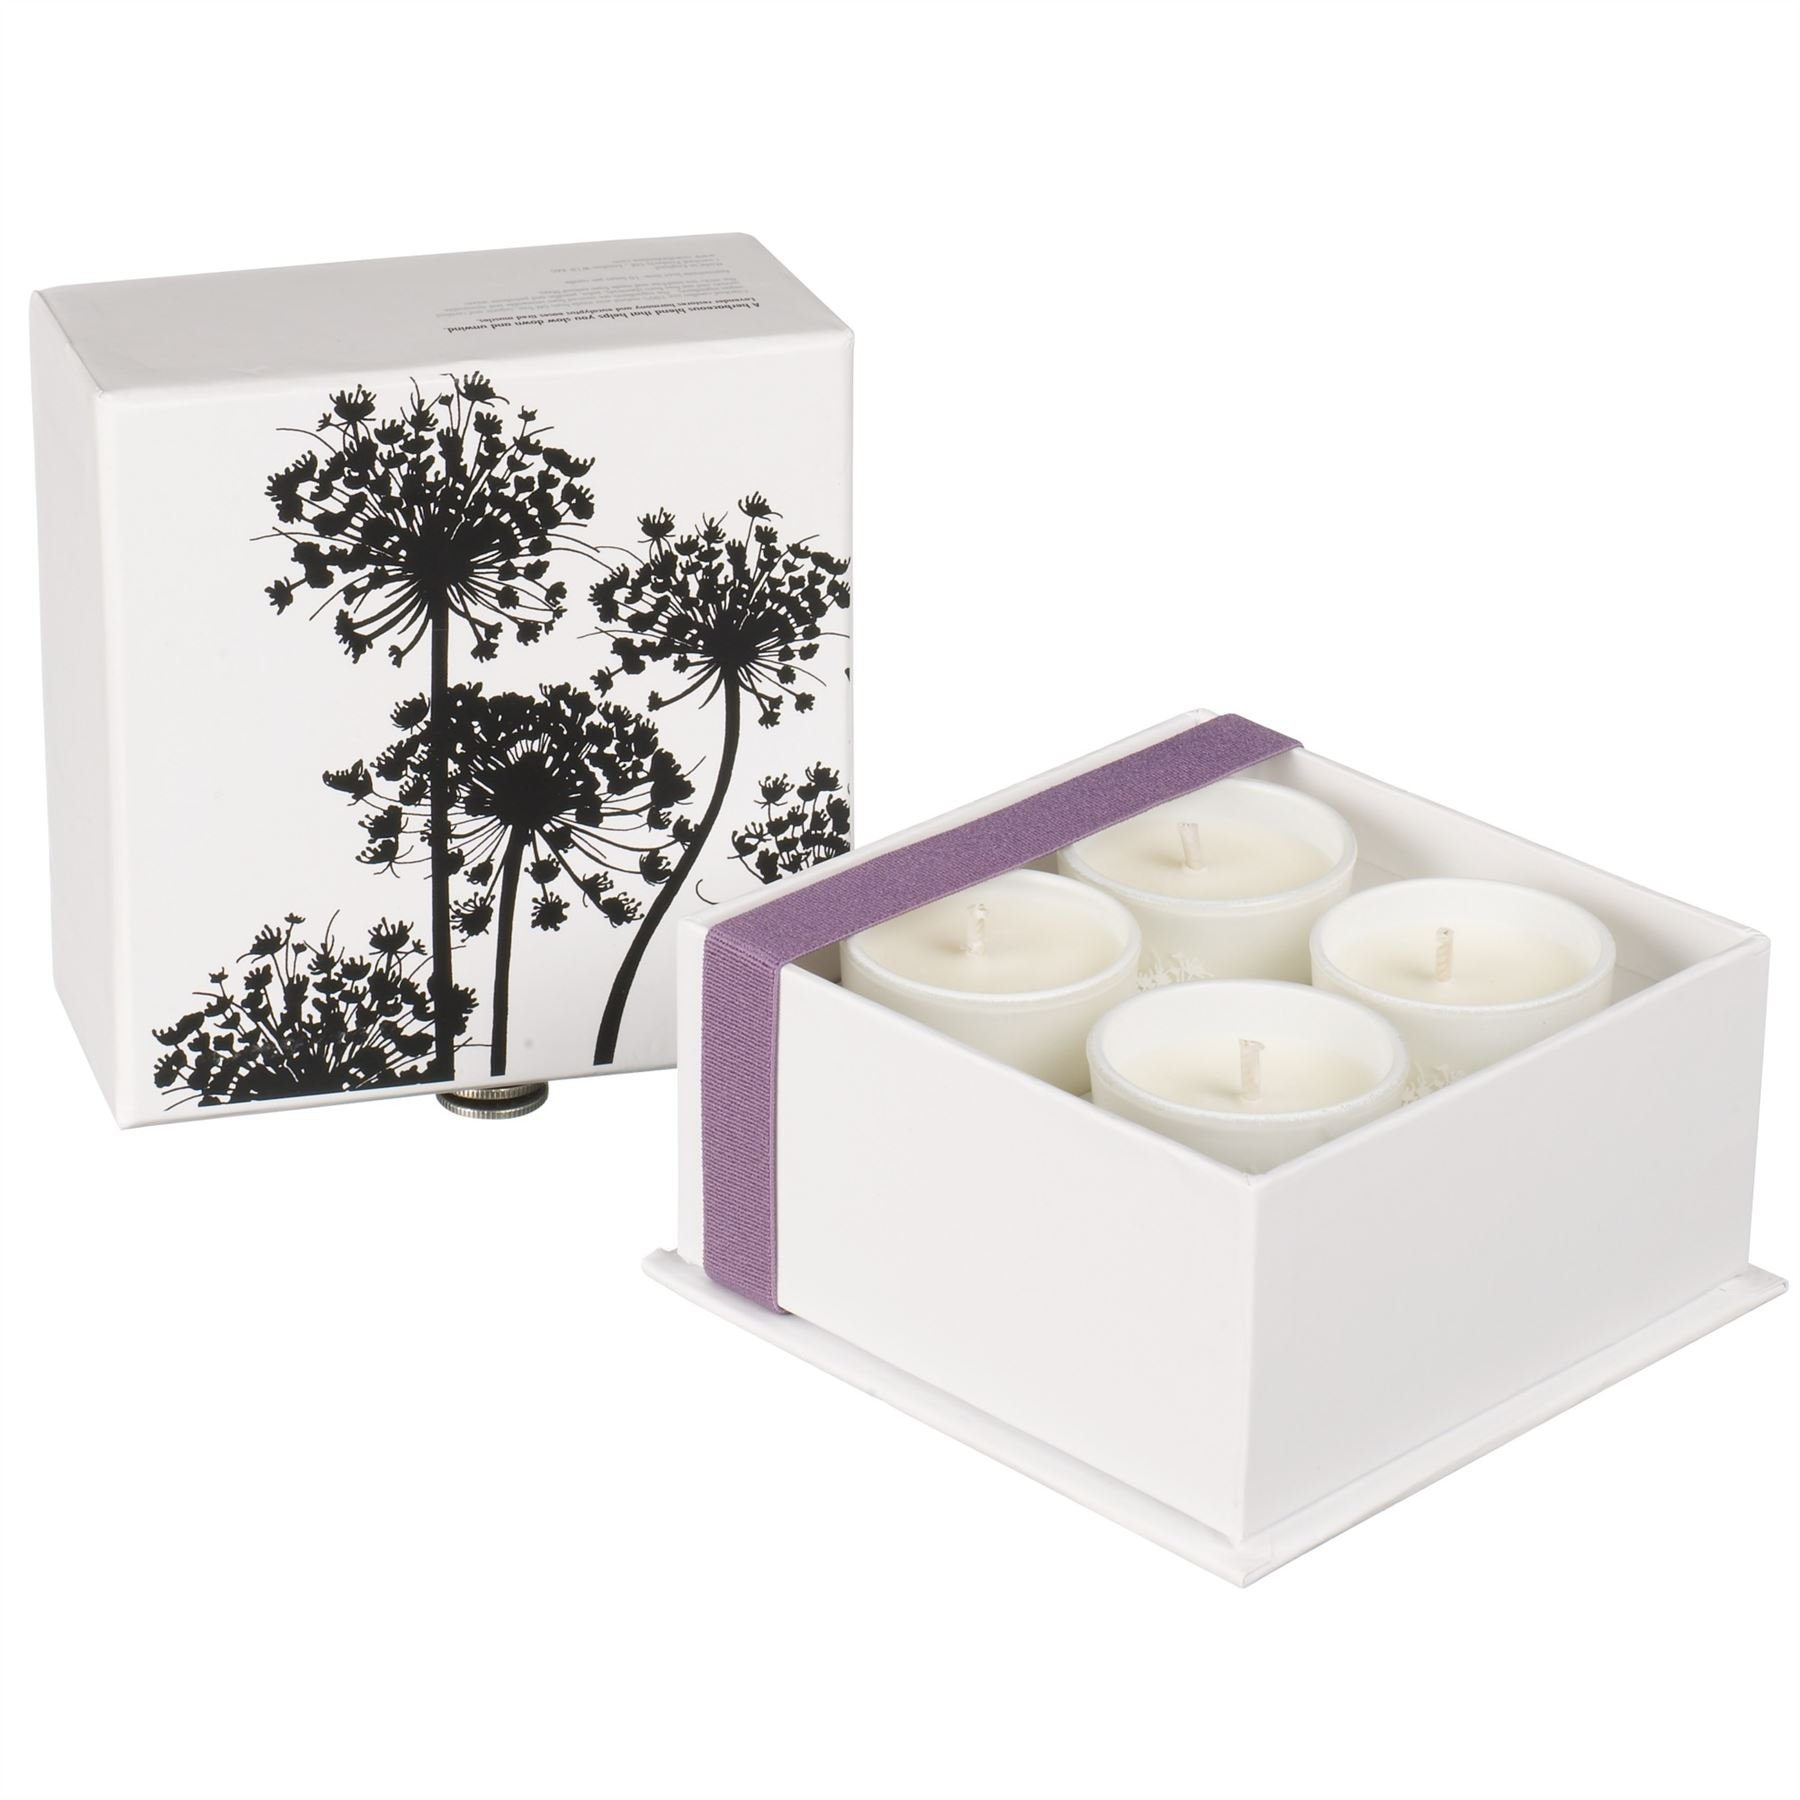 Cowshed Knackered Cow Travel Candles 4 x 38g - Pack of 2